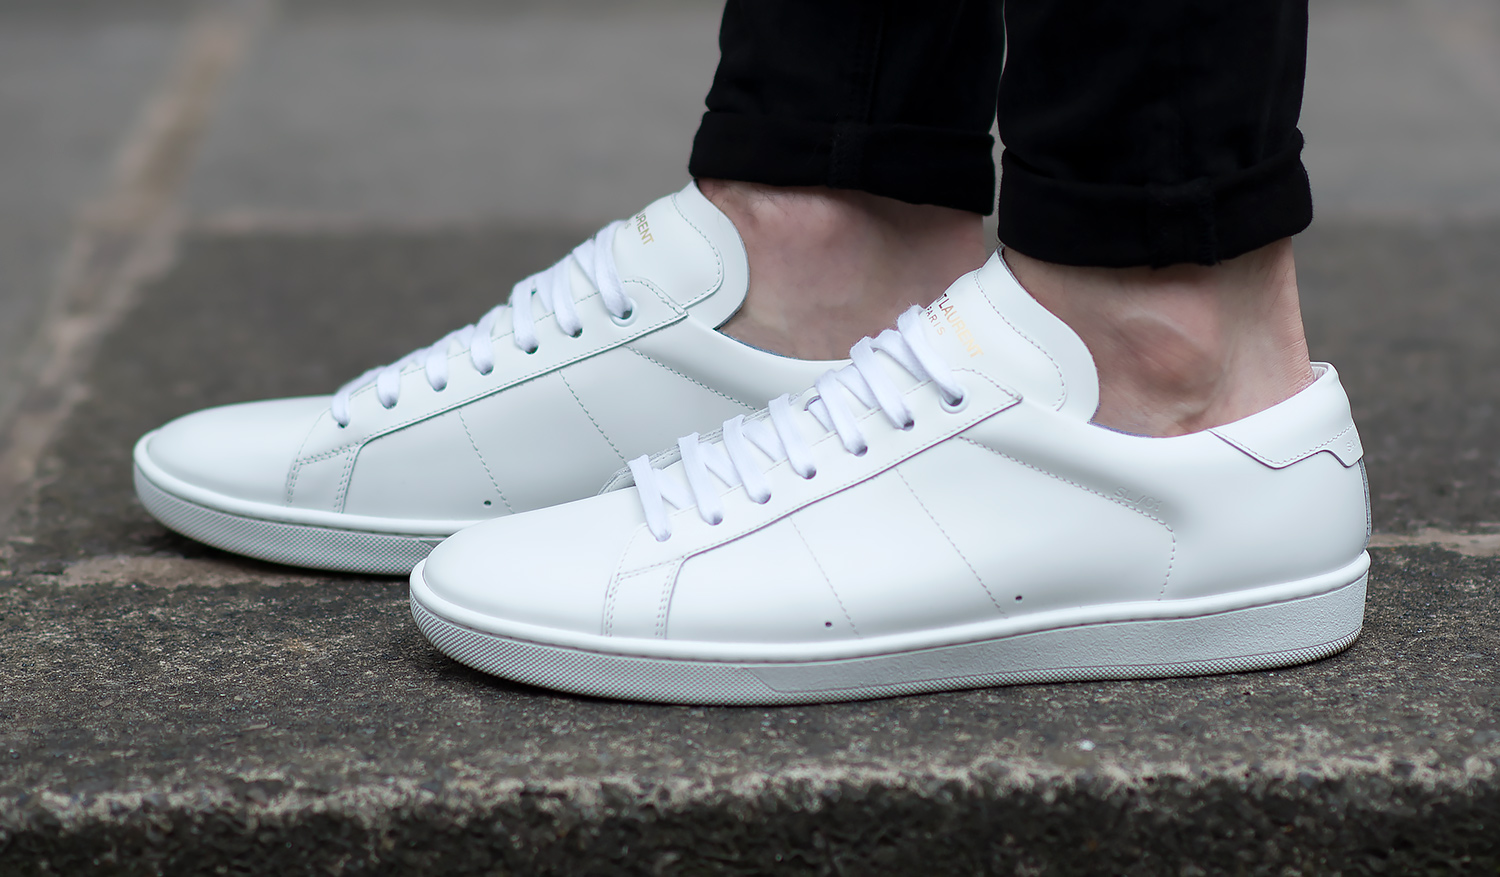 63b6542d41d Saint Laurent Off White Court Classic Sneakers Review | Your Average Guy